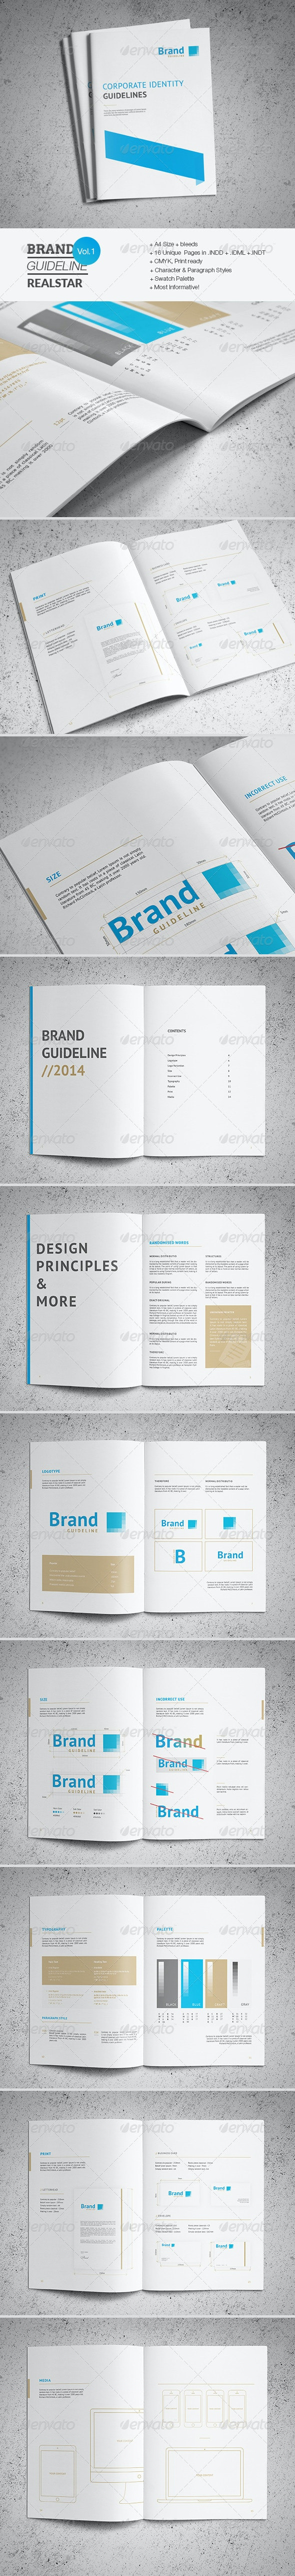 Brand Guideline Template - Informational Brochures